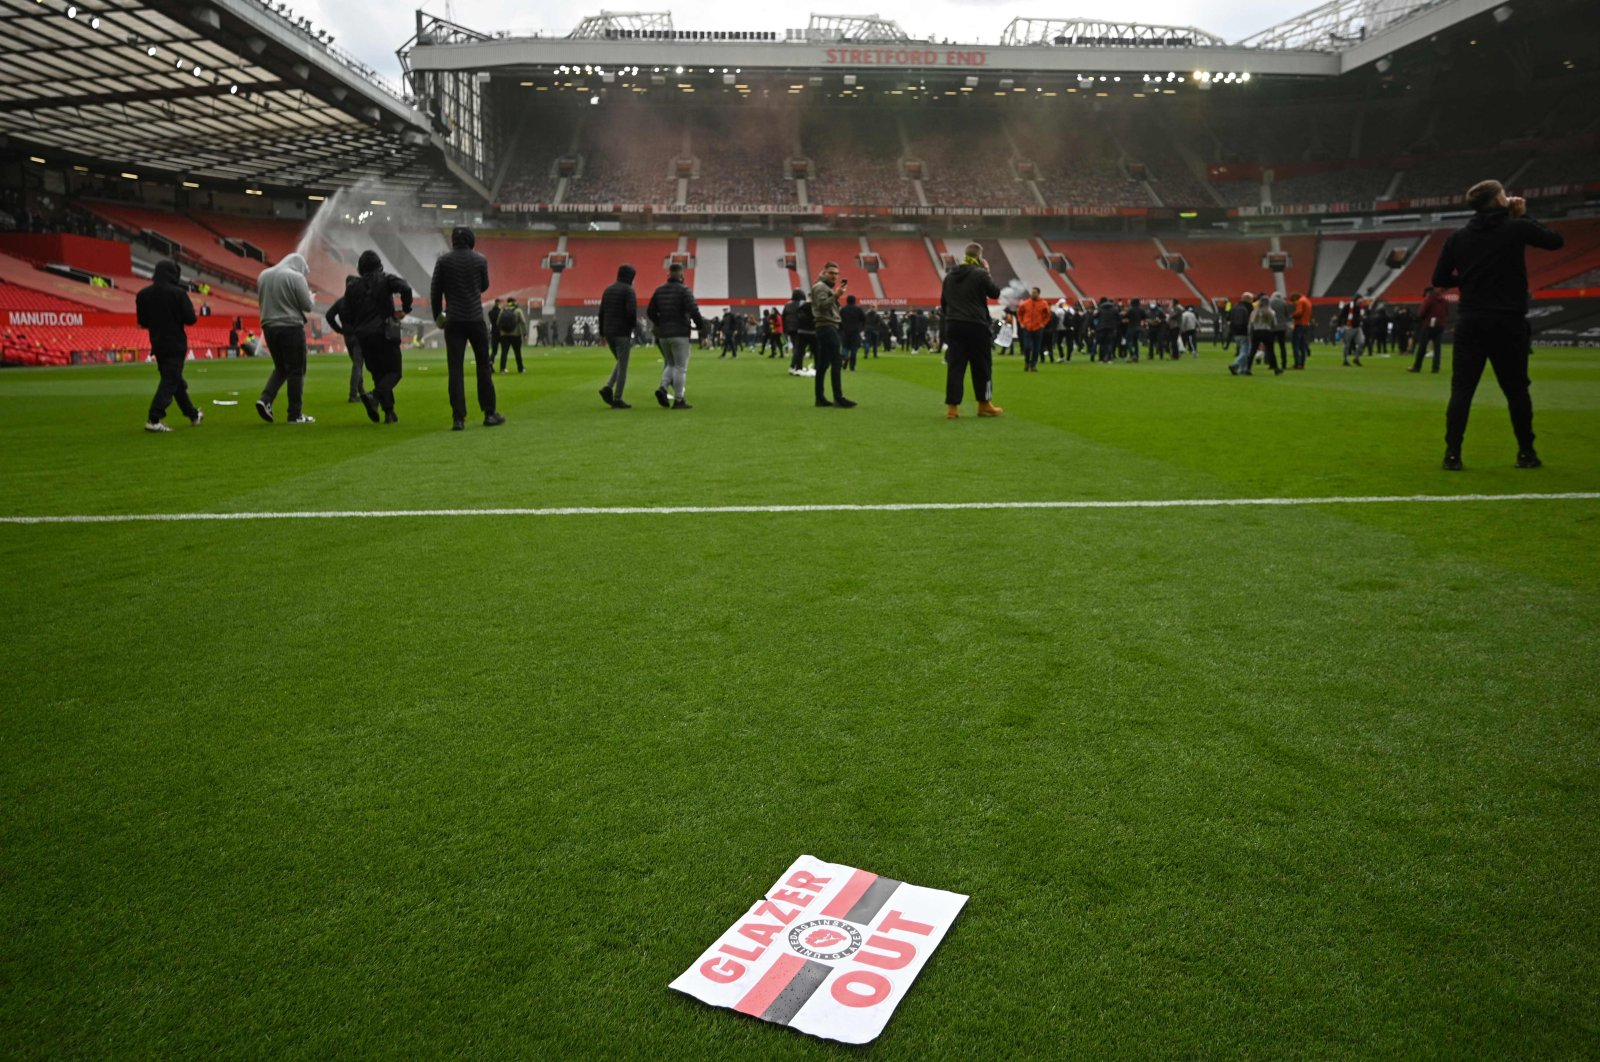 Supporters protest against Manchester United's owners inside the Old Trafford stadium in Manchester, northwest England, May 2, 2021. (AFP Photo)